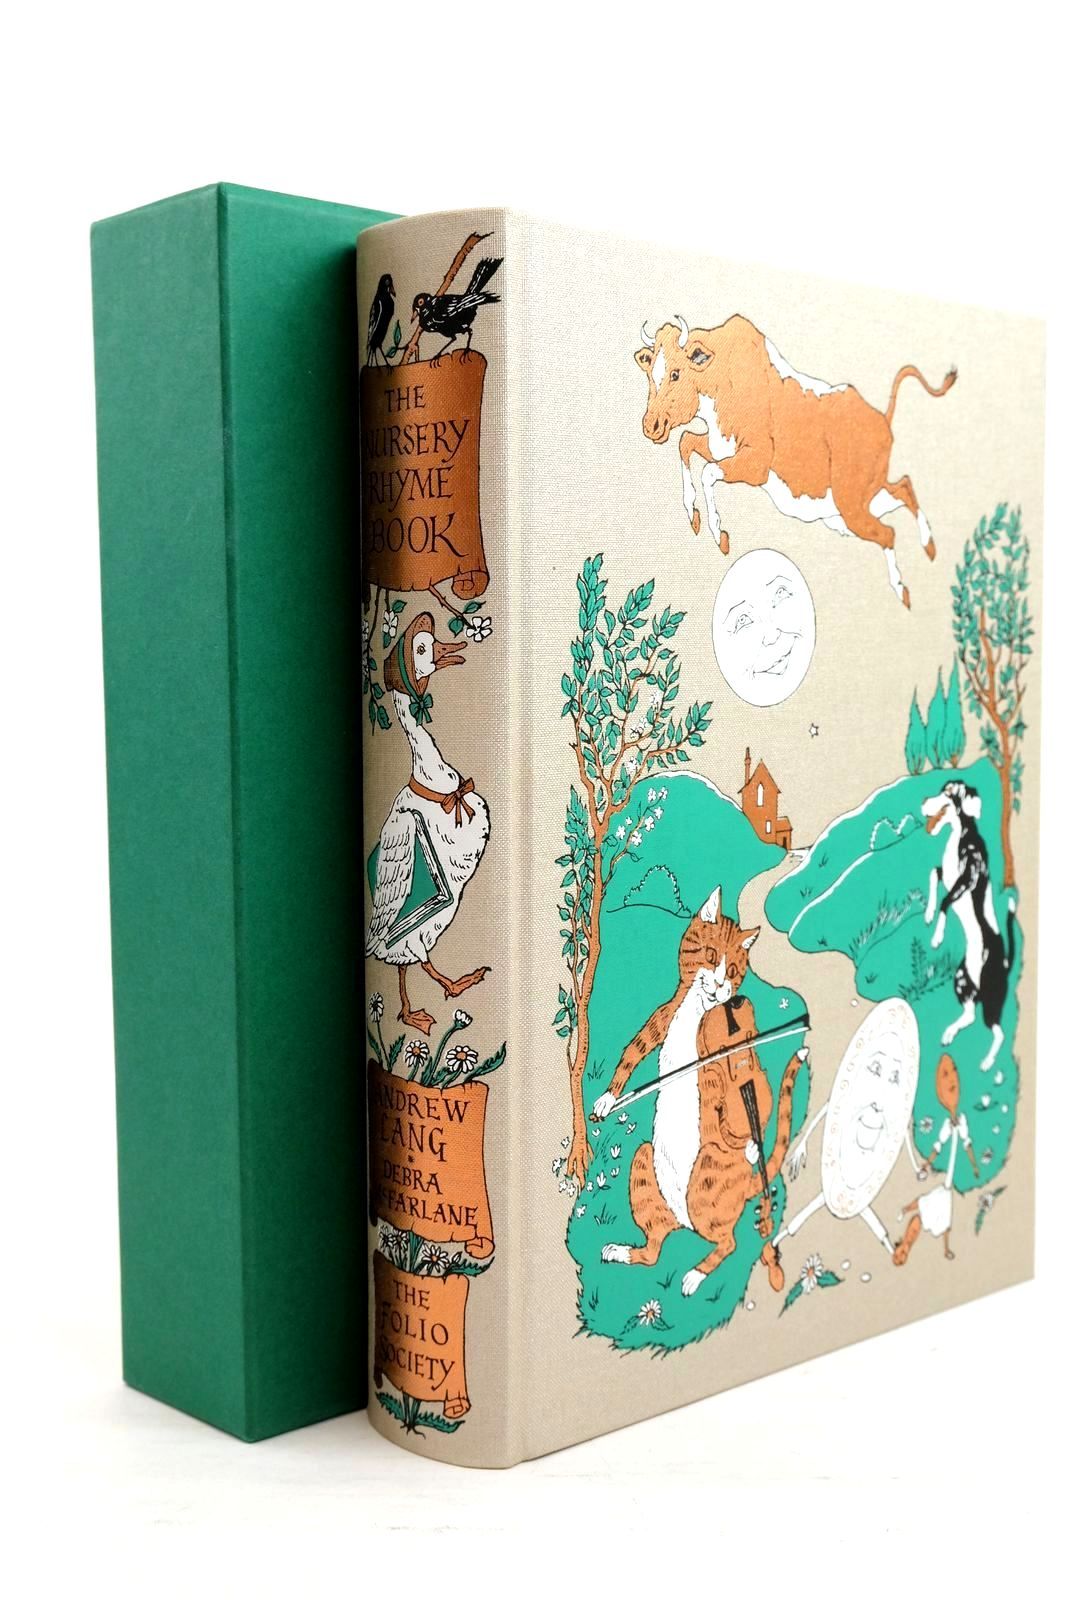 Photo of THE NURSERY RHYME BOOK written by Lang, Andrew Rosen, Michael illustrated by McFarlane, Debra Brooke, L. Leslie published by Folio Society (STOCK CODE: 1320808)  for sale by Stella & Rose's Books